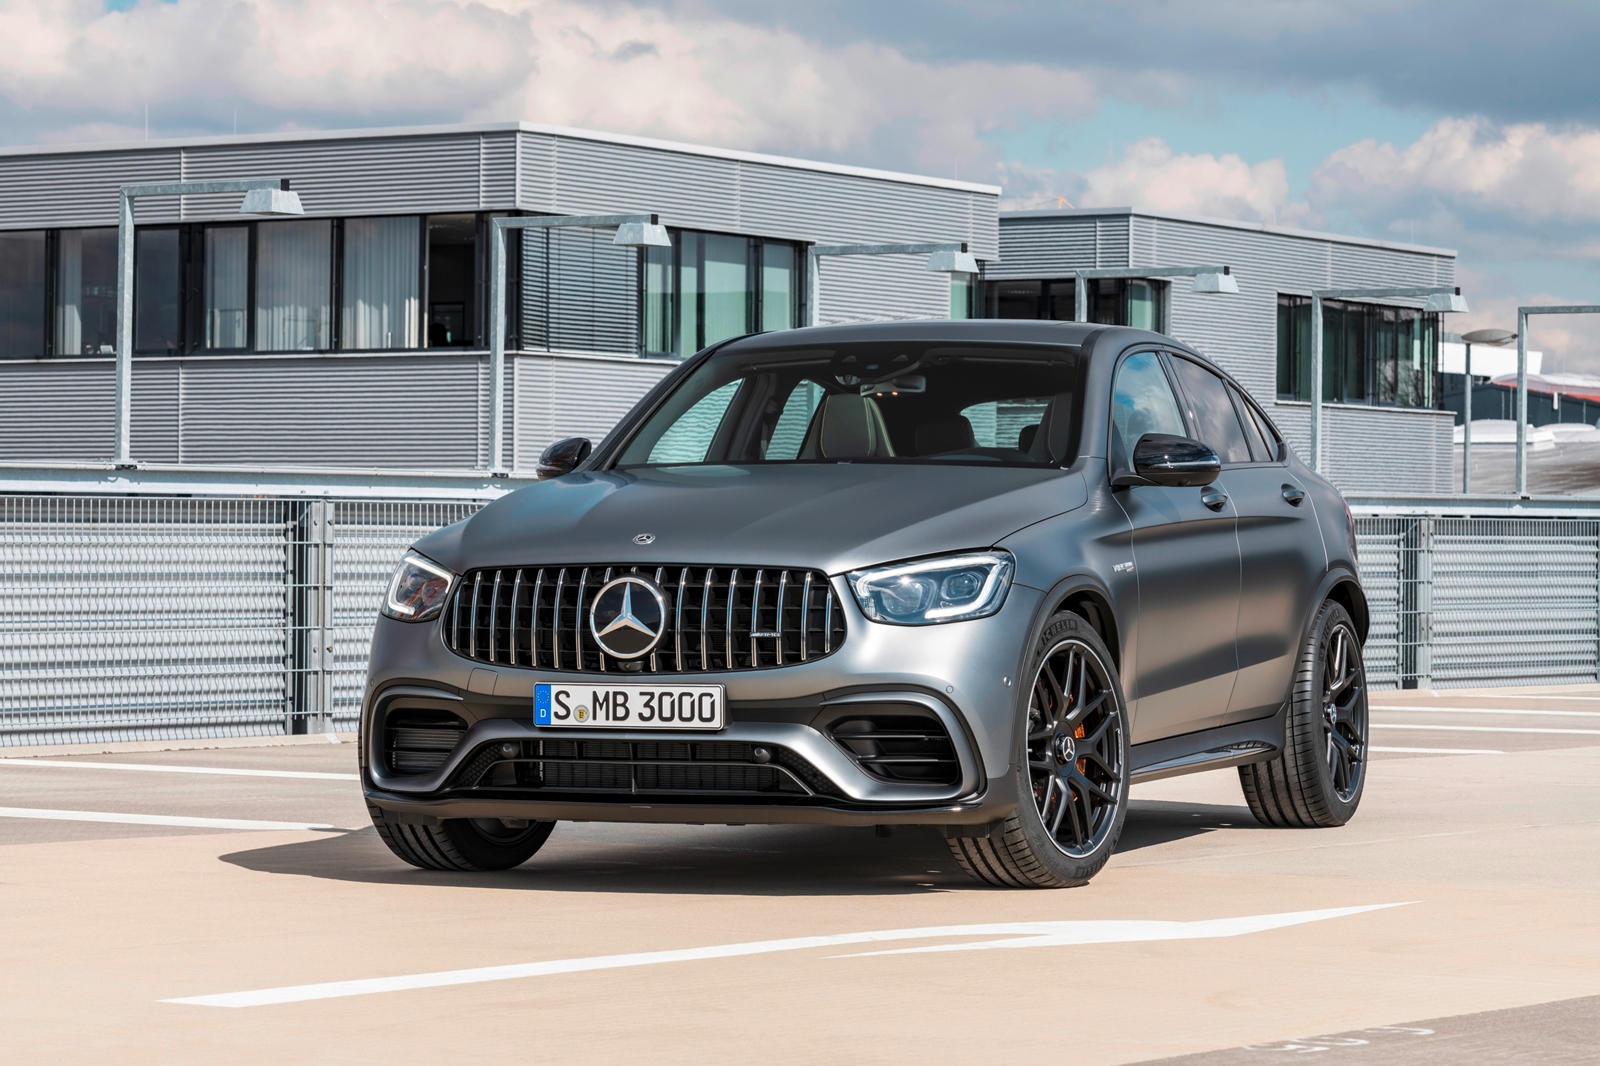 2020 Mercedes Amg Glc 63 Coupe Review Trims Specs Price New Interior Features Exterior Design And Specifications Carbuzz